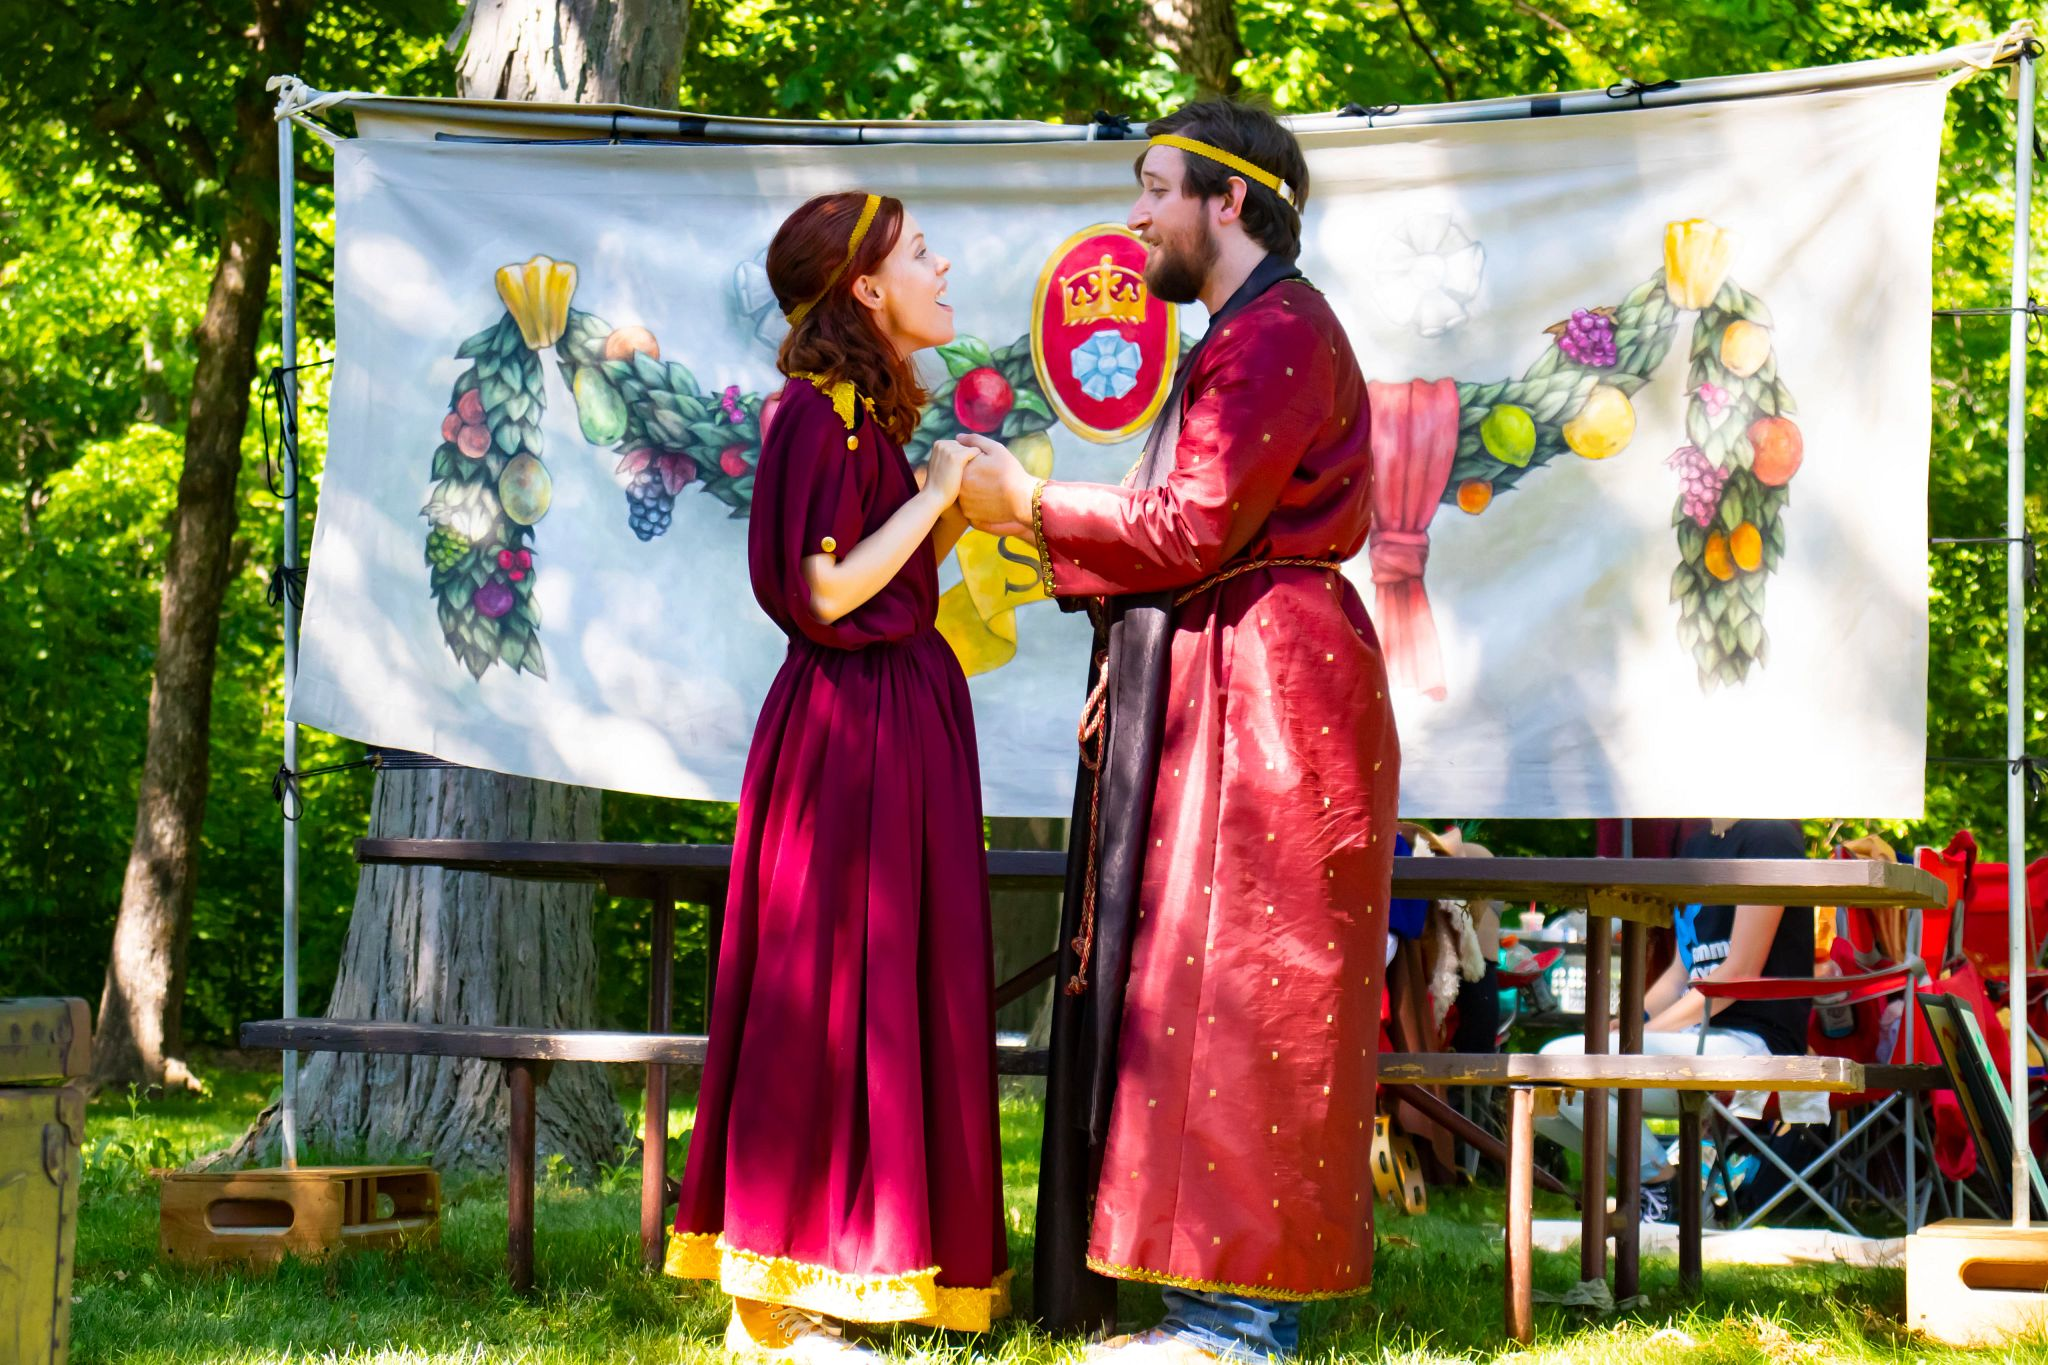 An image of a play at a Wisconsin state park.